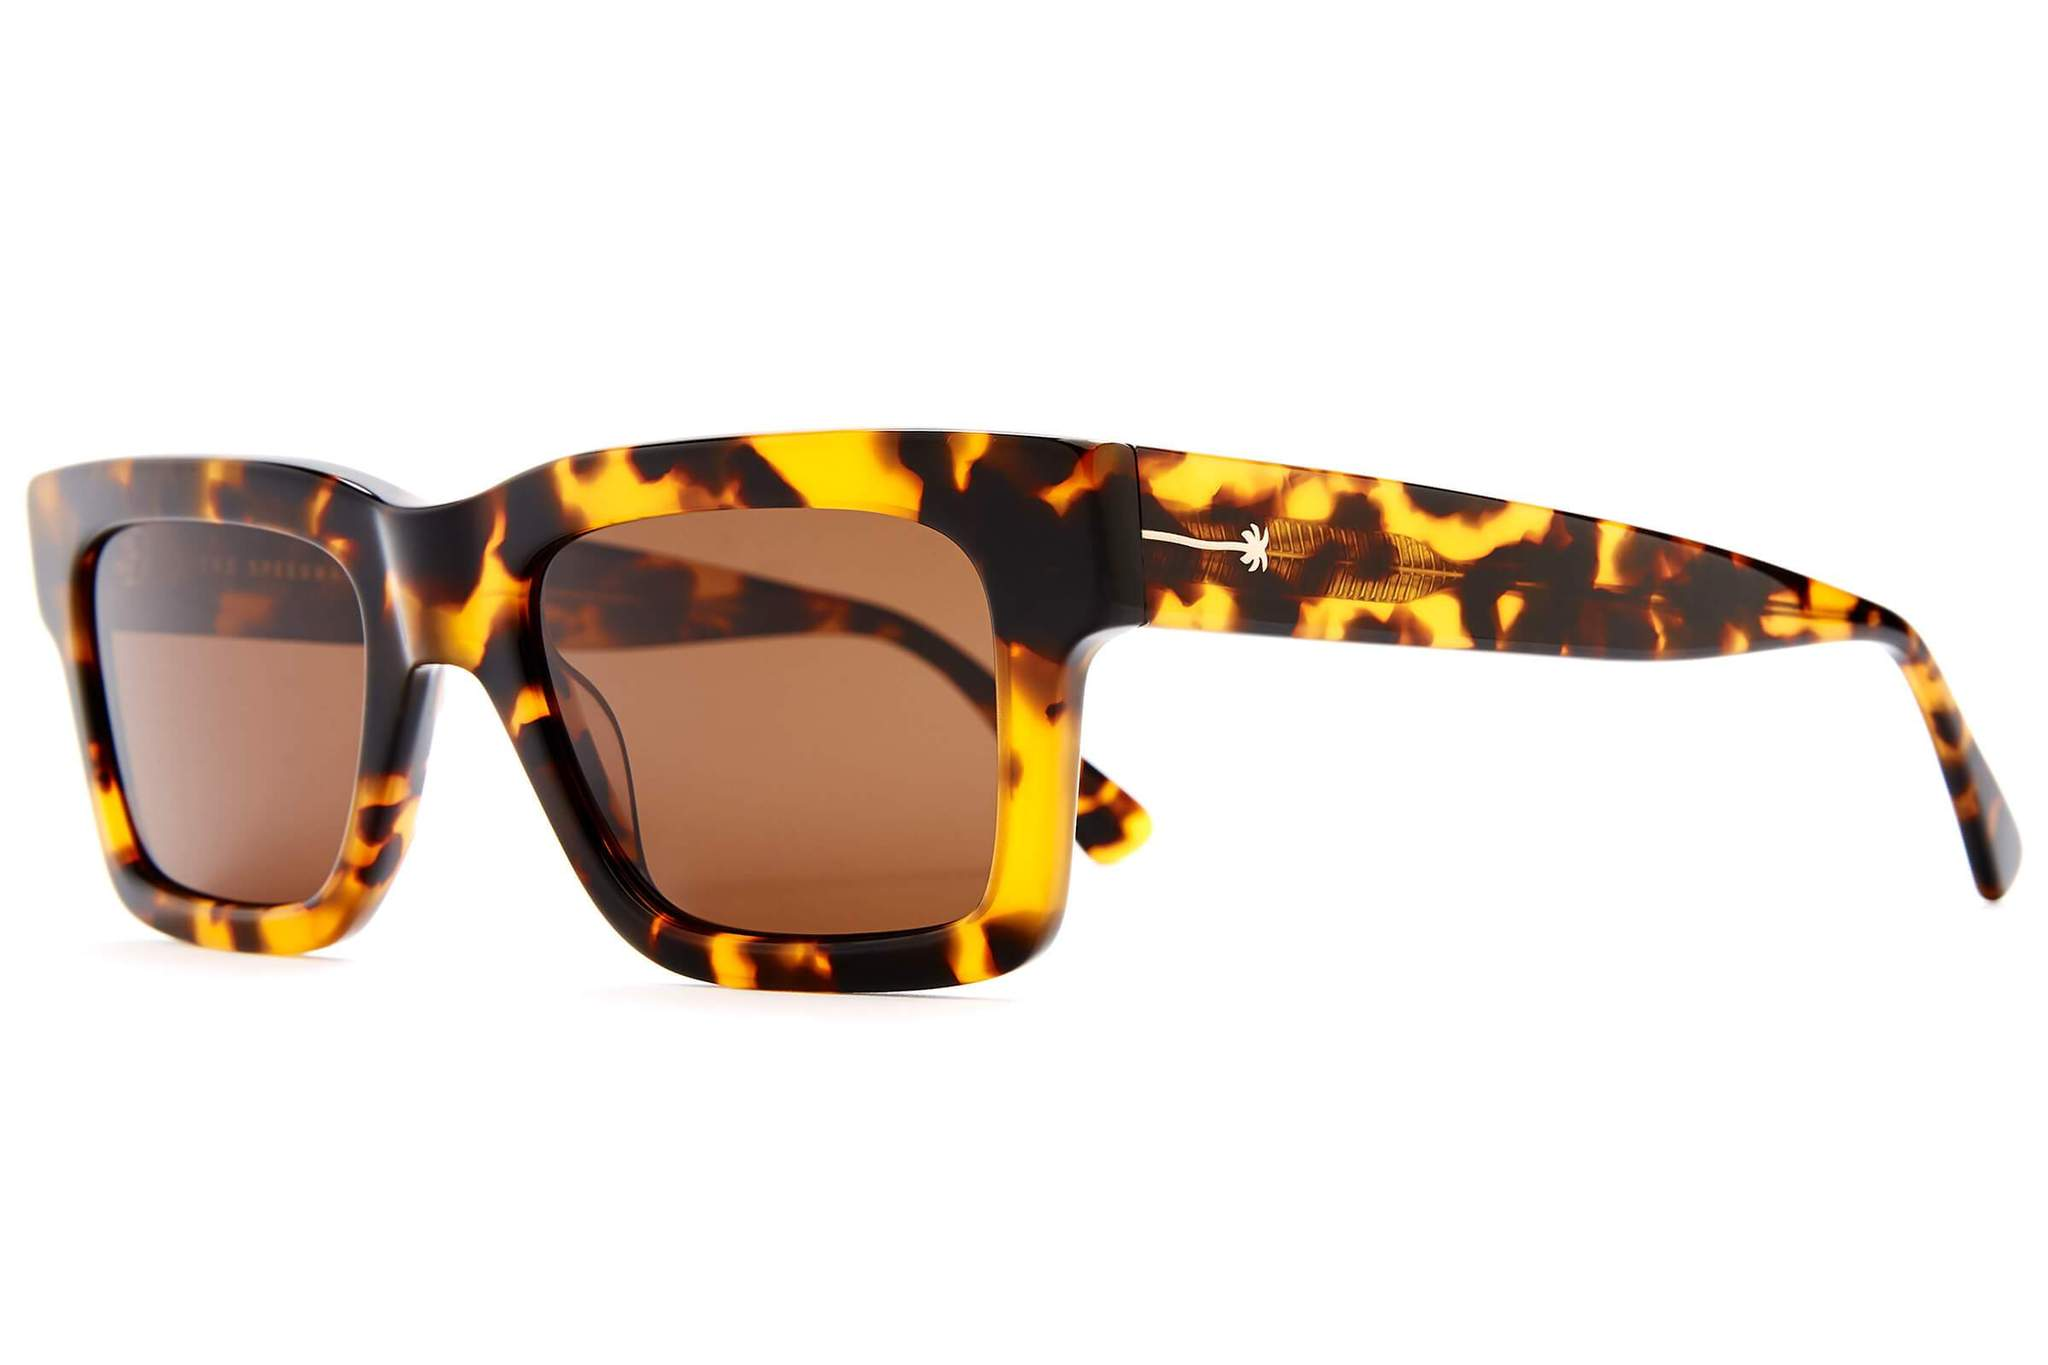 THE SPEEDWAY / POLARISED / RUM HAVANA TORTOISE